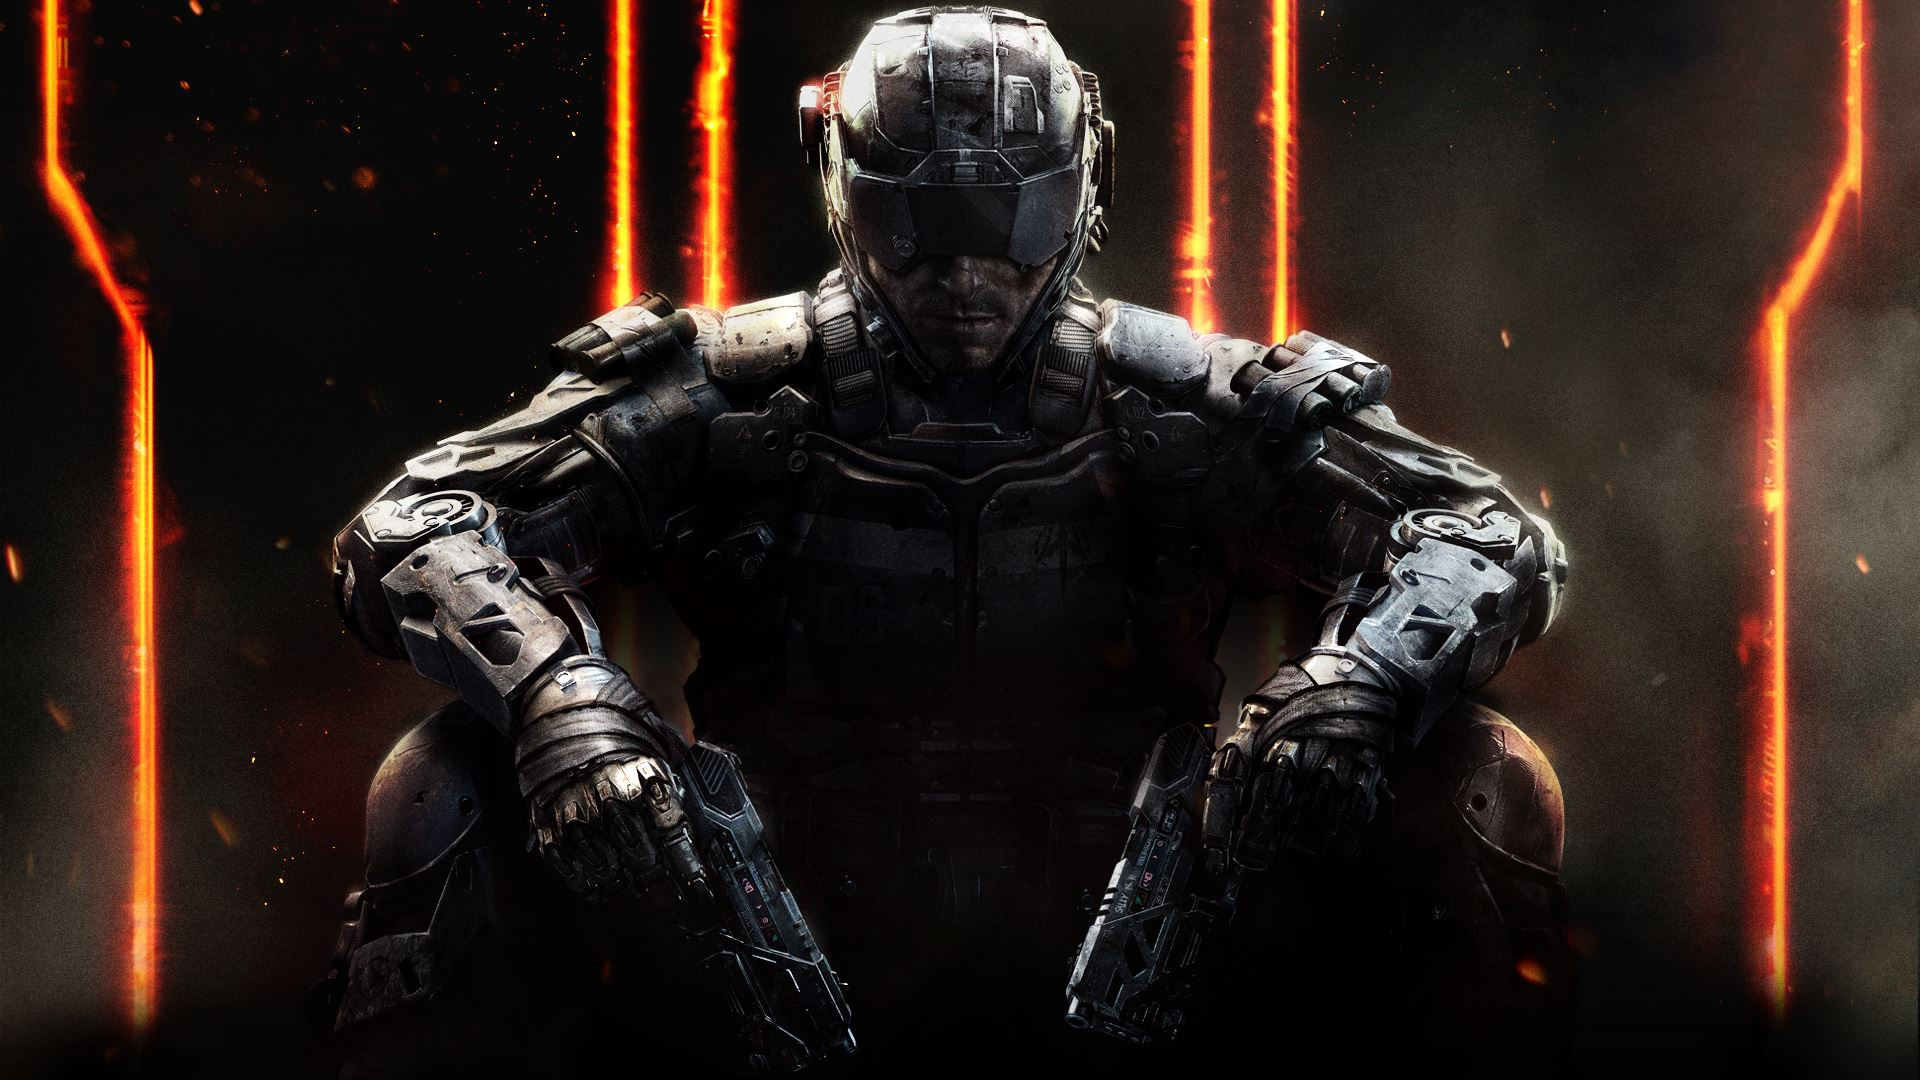 Call Of Duty: Black Ops 3 Holding Double XP Weekend Starting Friday